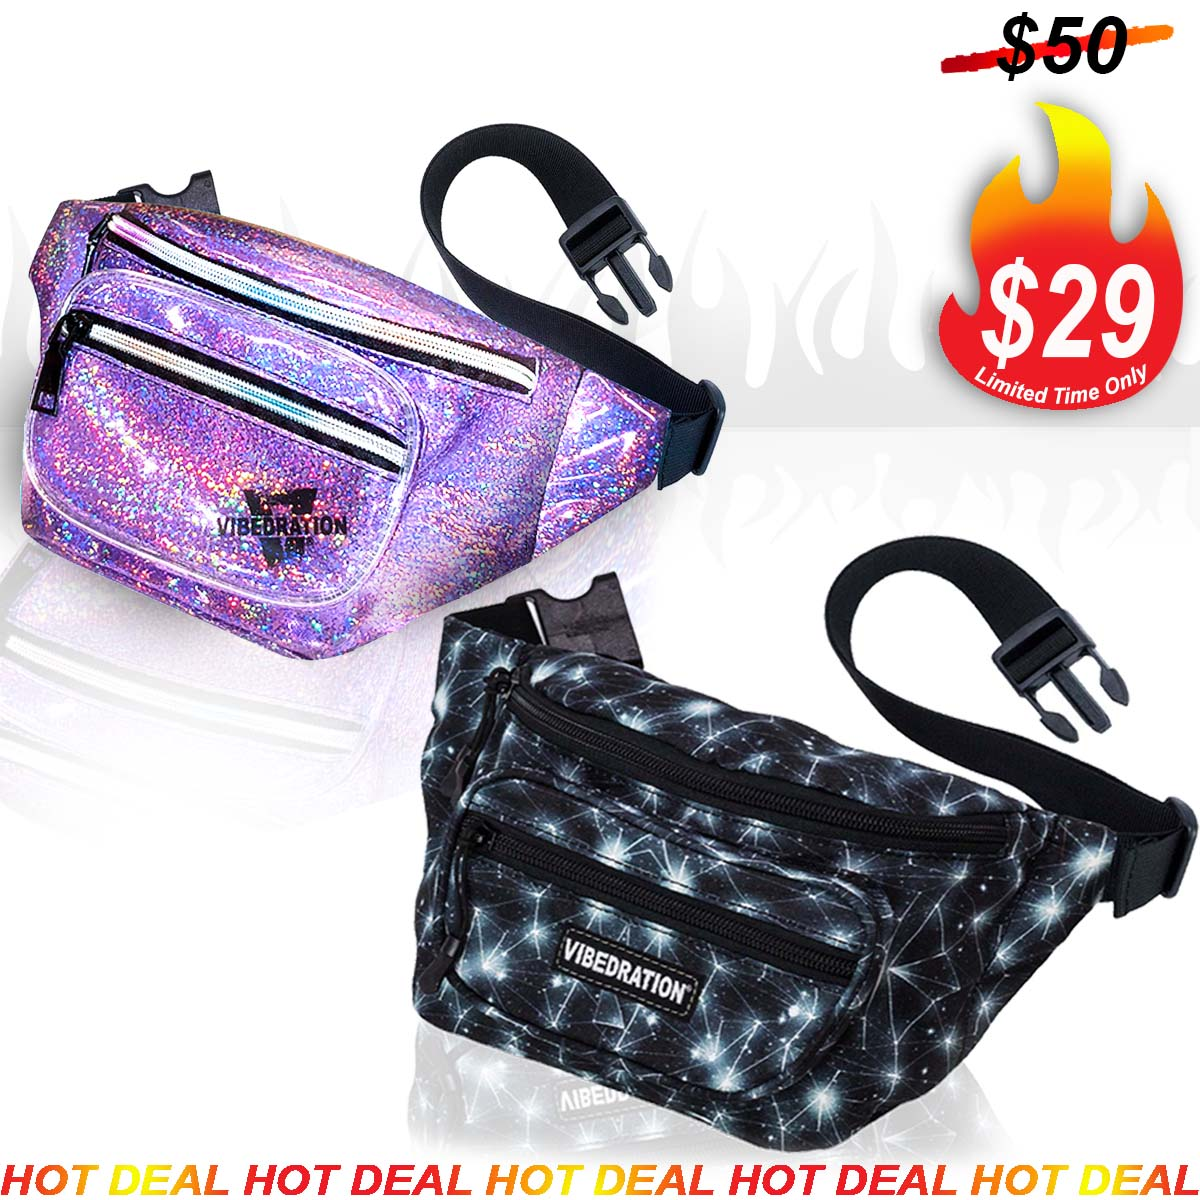 Lavender Sparkle Holographic Sling Pack and Black Space Multi Pocket Waist Bag